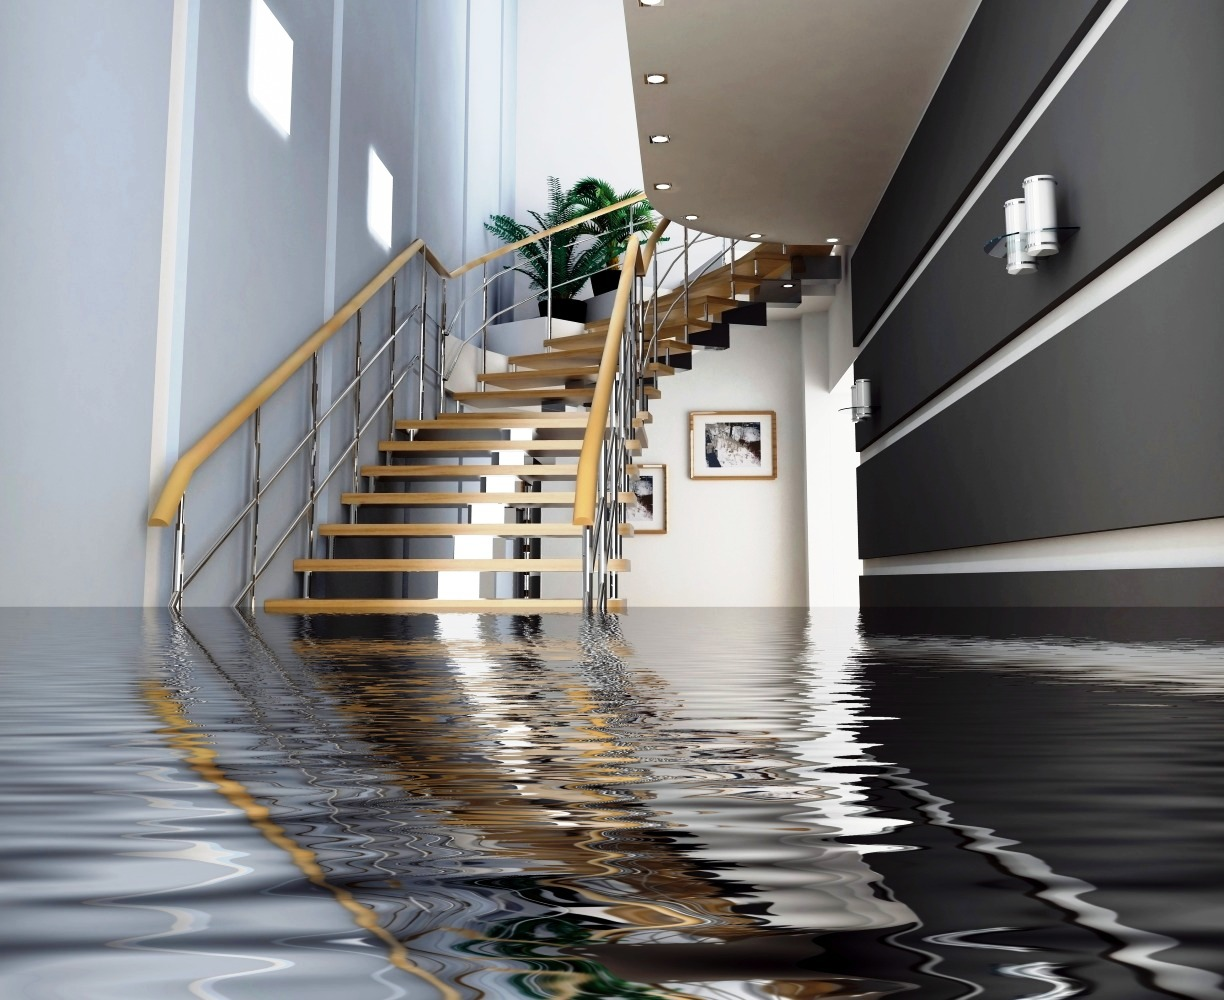 Water Damage Consequences